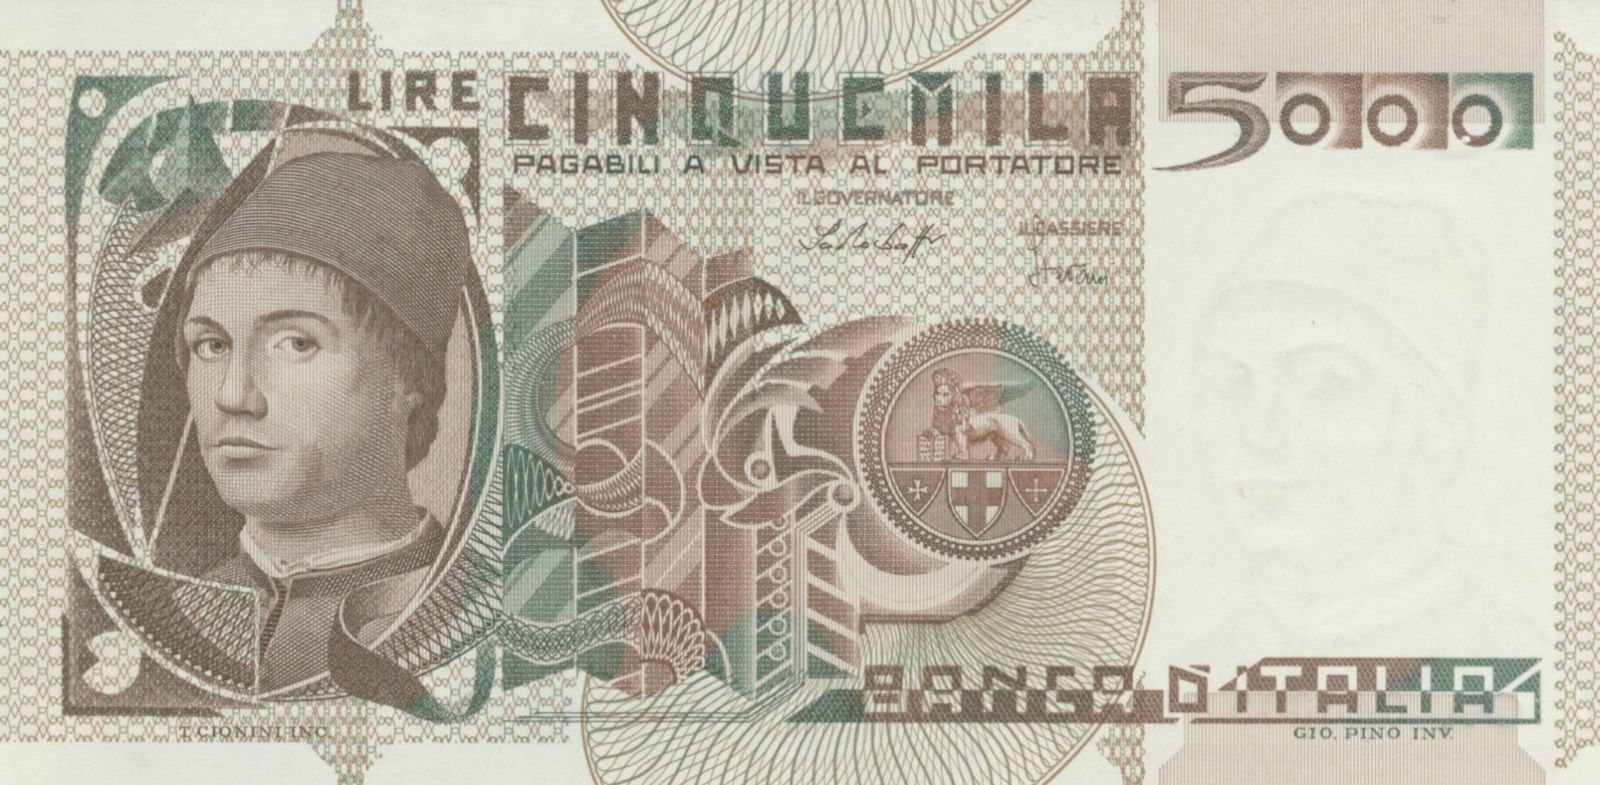 5.000 lire Antonello da Messina